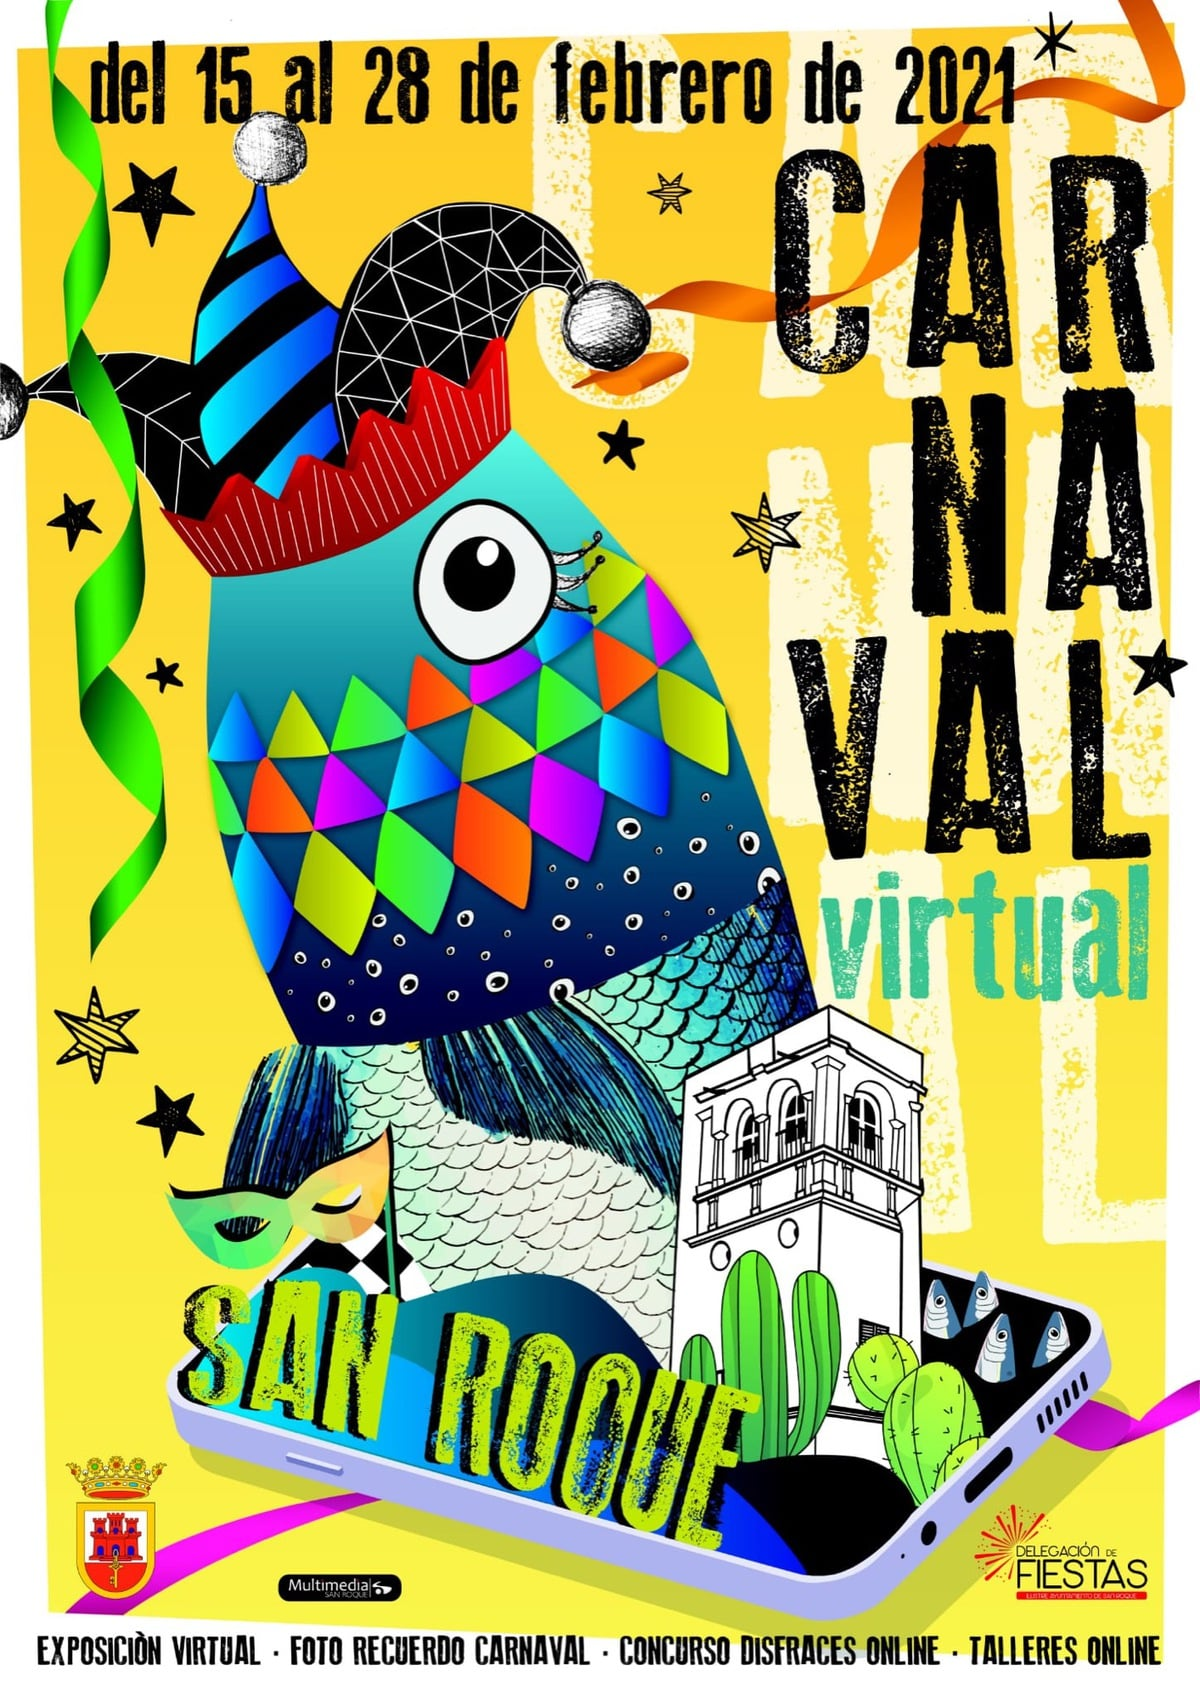 sites/default/files/2021/agenda/carnaval/carnaval-virtual-sanroque.jpg